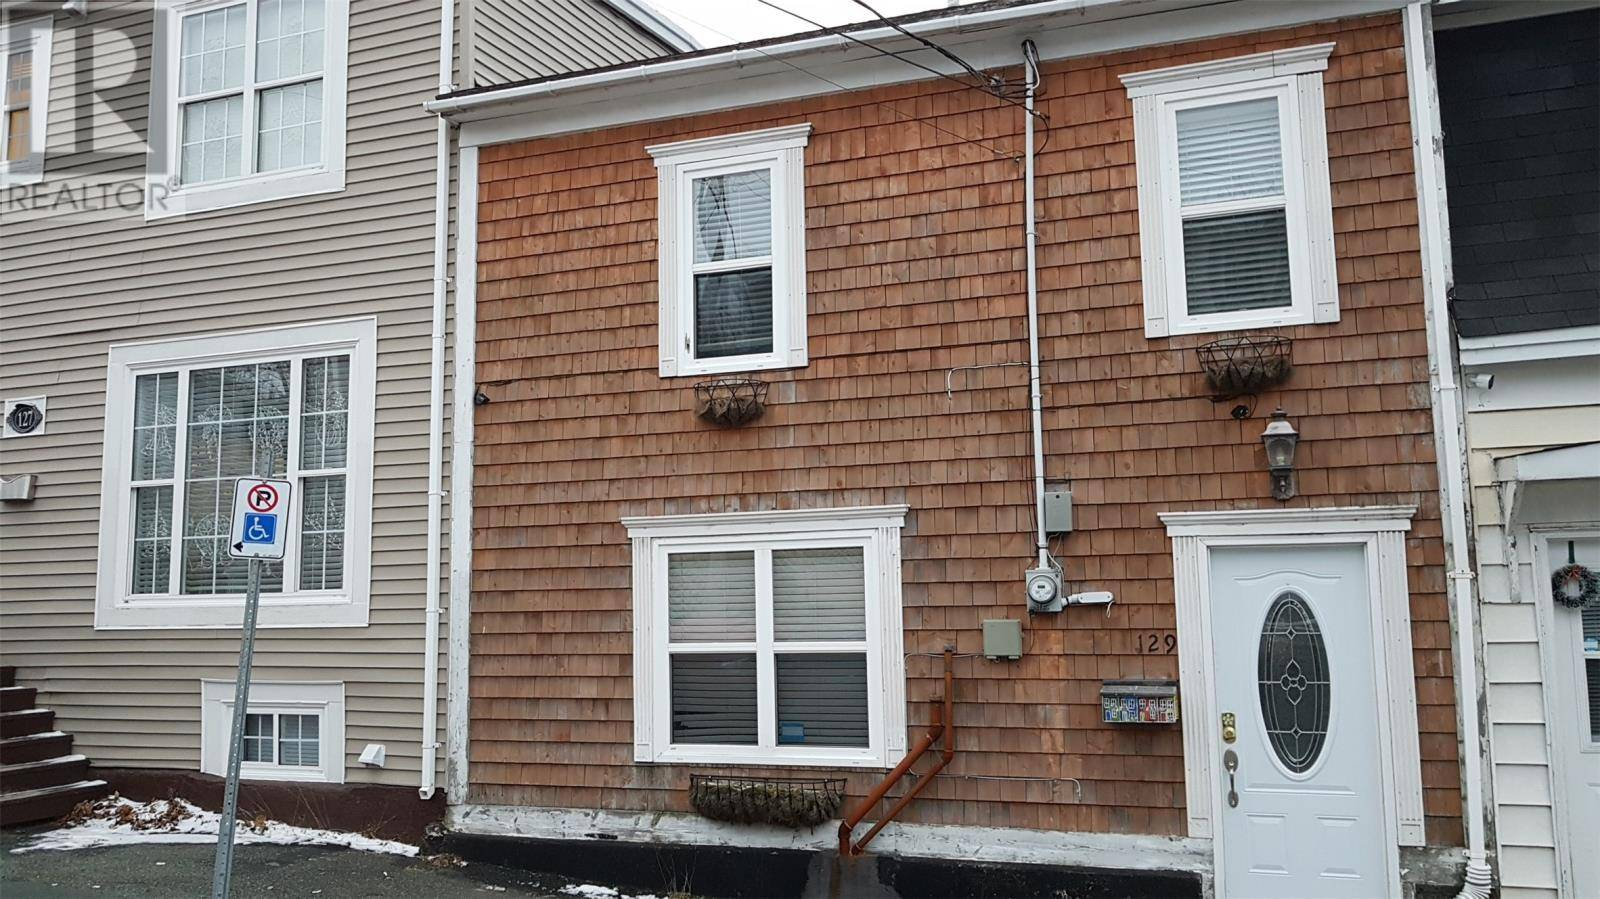 House for sale at 129 Cabot St St. John's Newfoundland - MLS: 1209107